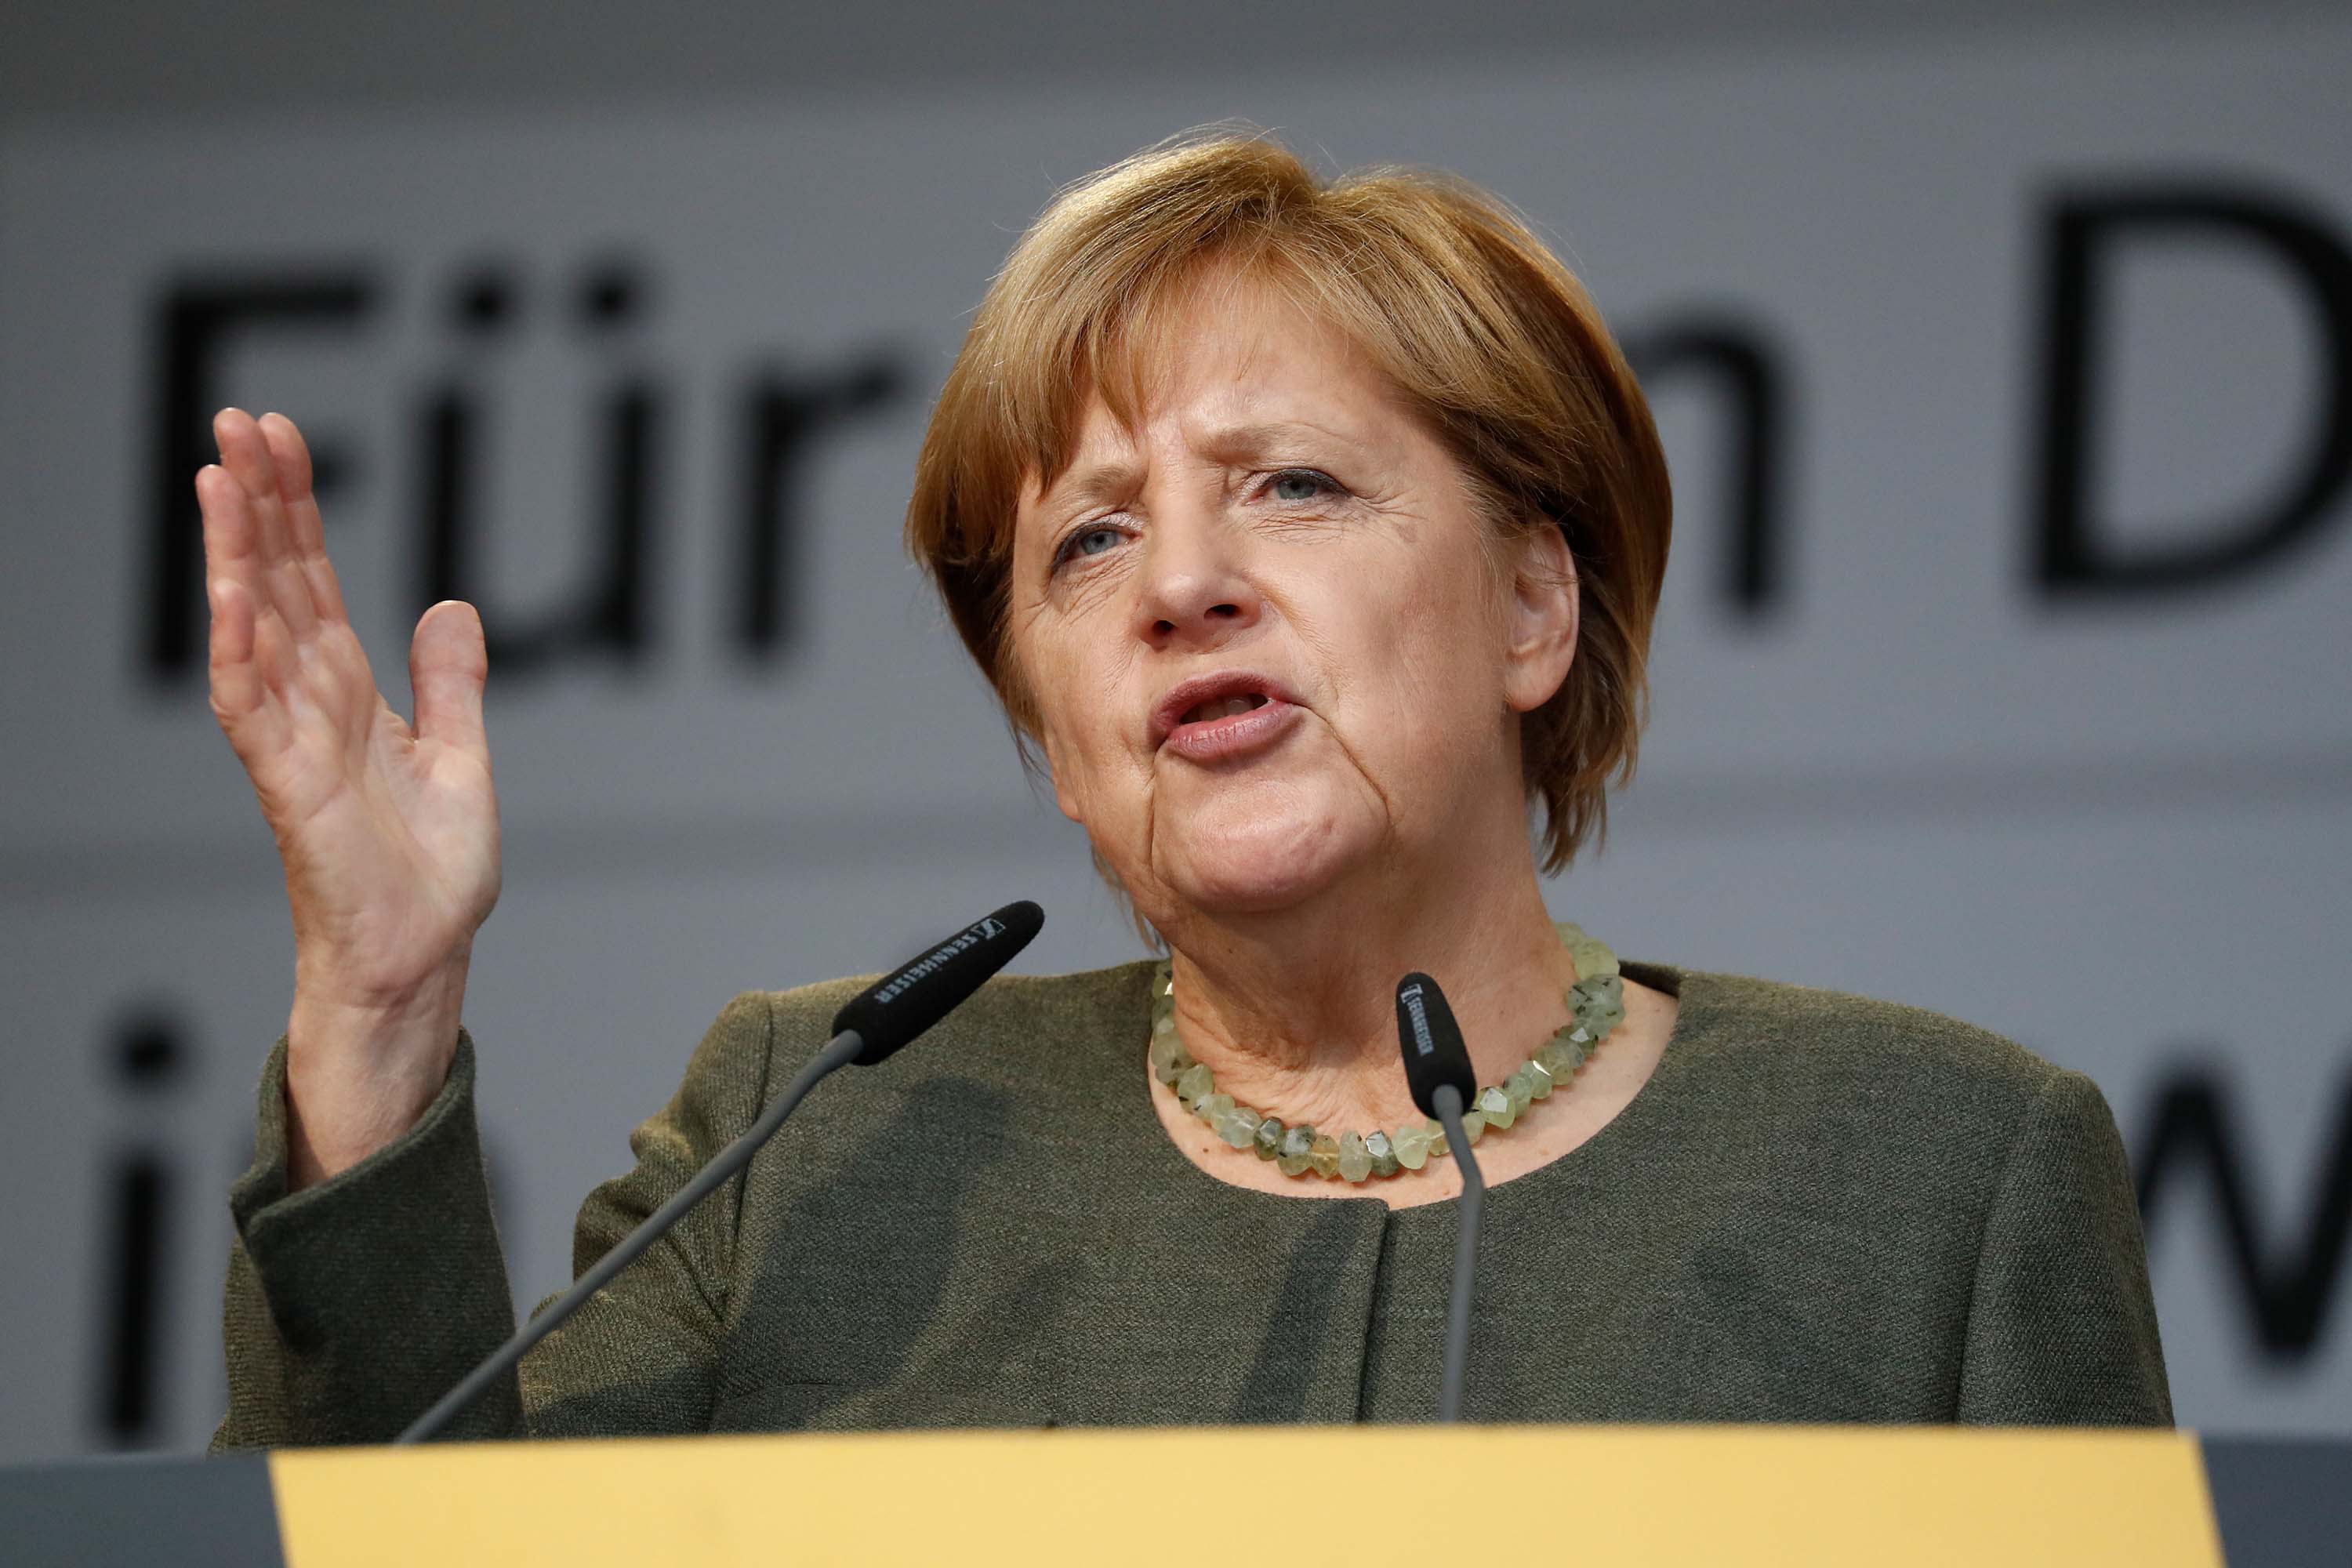 The European Union (eu) Is Facing The Biggest Test Since Its Creation And Should Be Resolutely Defended During The Coronavirus Crisis, German Chancellor Angela Merkel Says. The Pandemic Is A ""